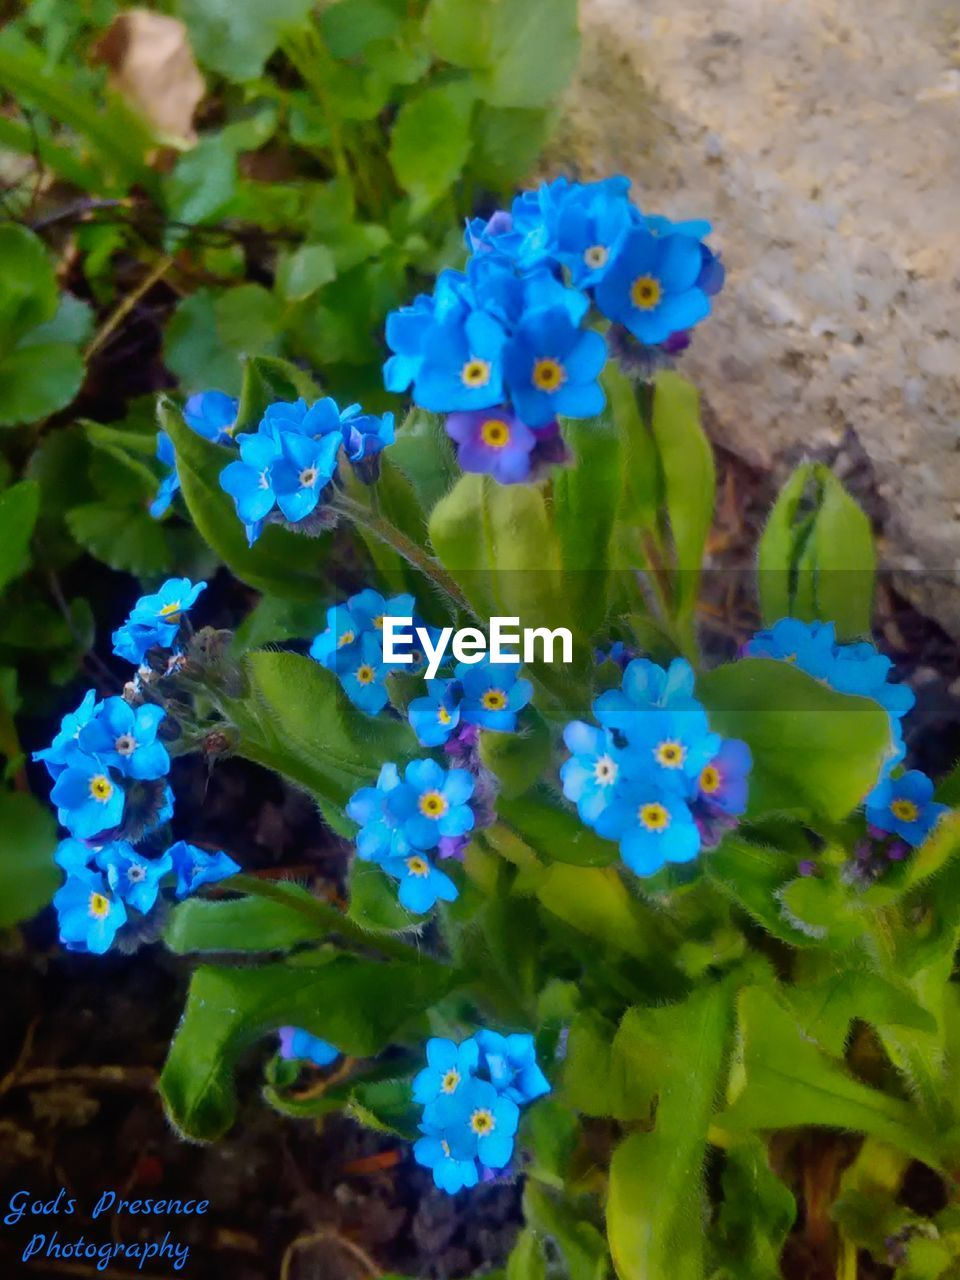 flower, plant, growth, fragility, green color, nature, freshness, beauty in nature, day, outdoors, no people, blue, petal, hydrangea, leaf, flower head, close-up, blooming